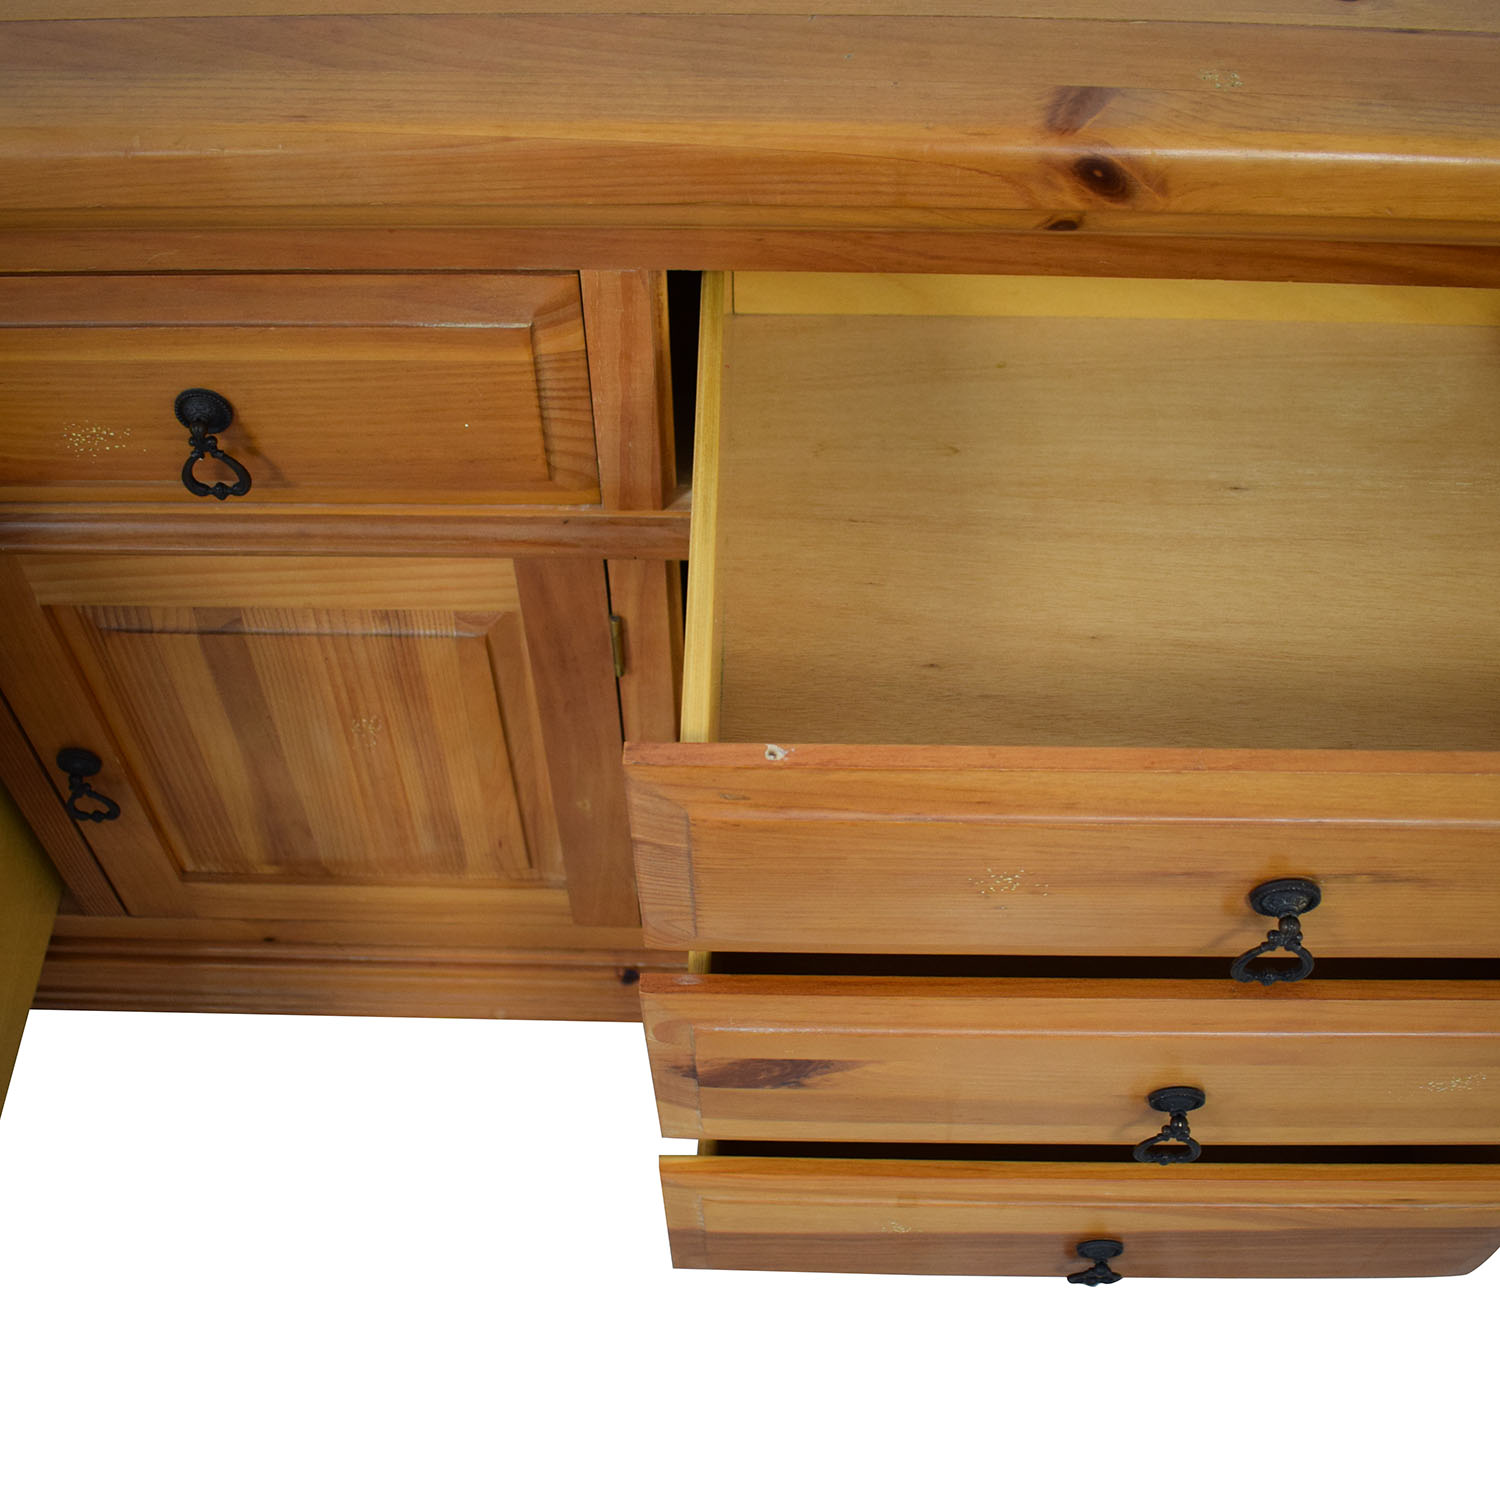 Broyhill Furniture Broyhill Furniture Wood Dresser with Cabinet